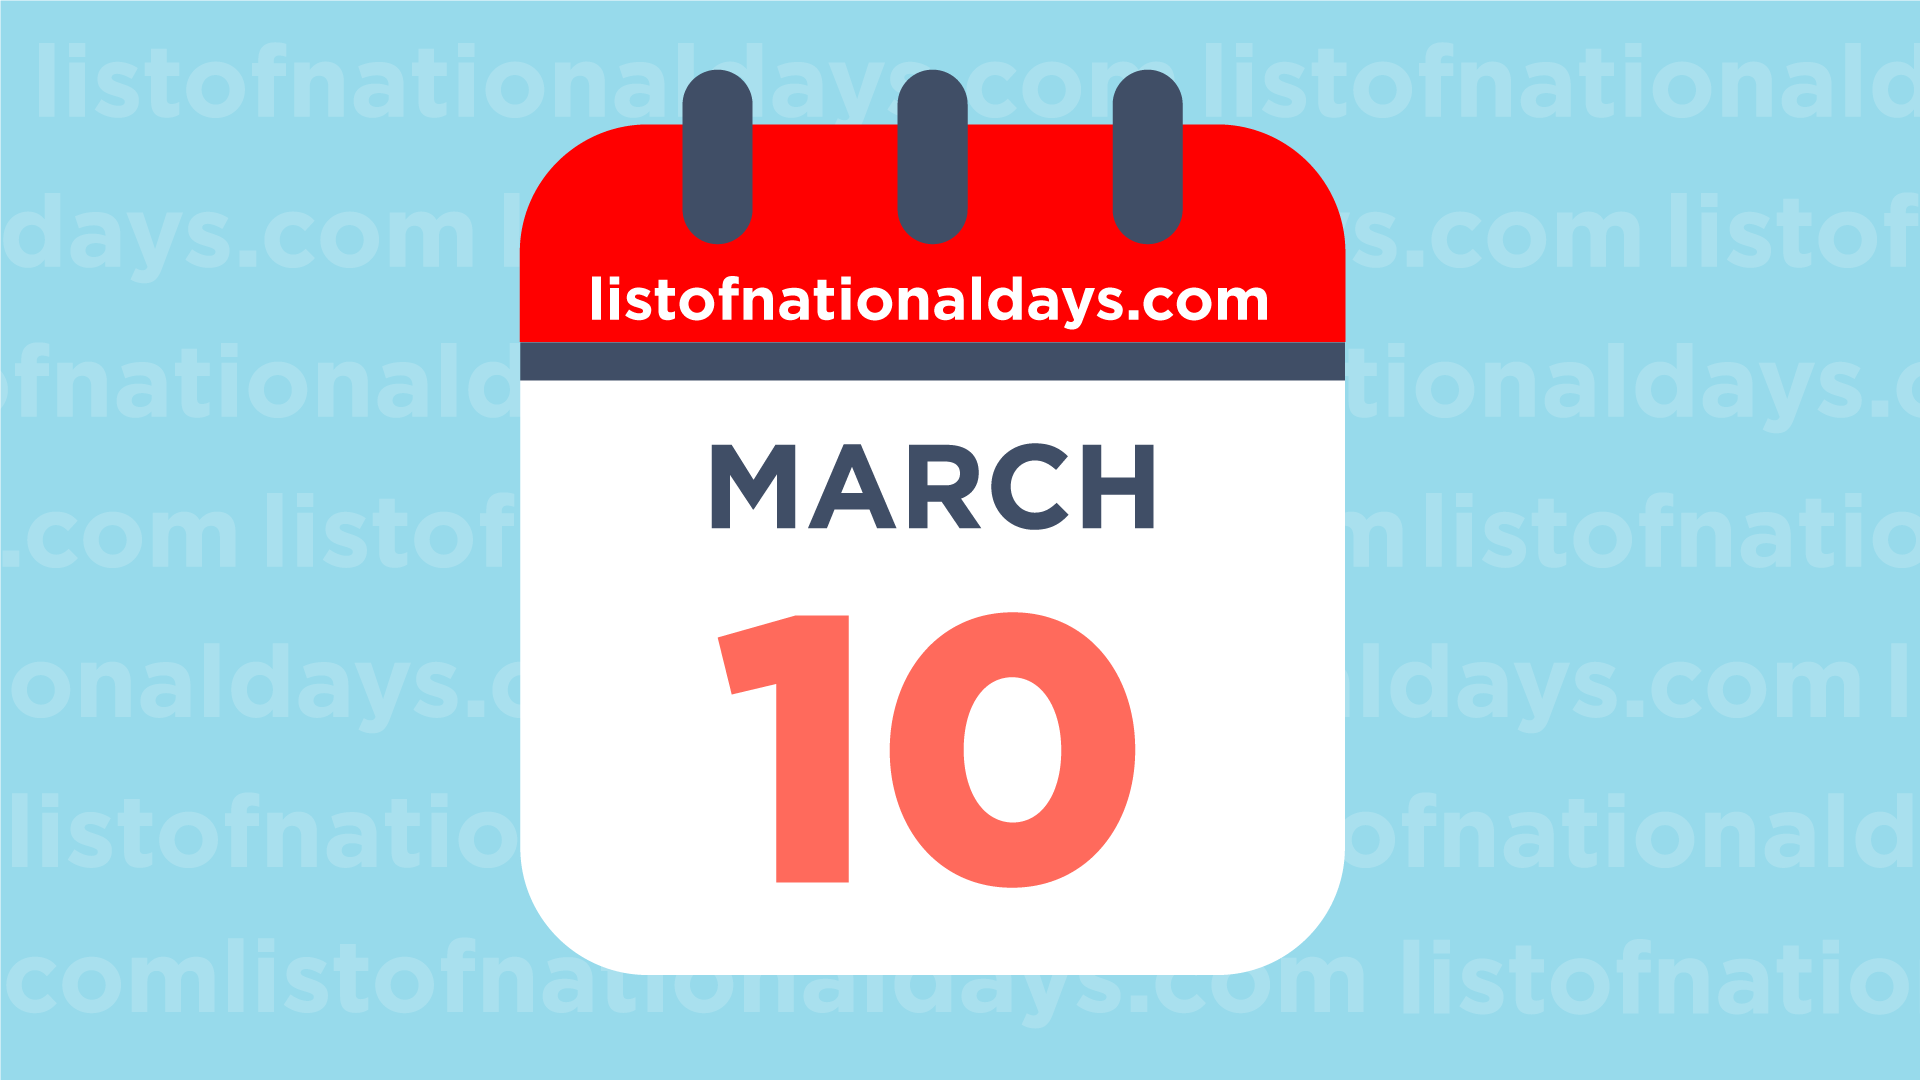 MARCH 10TH: National HolidaysObservances & Famous Birthdays